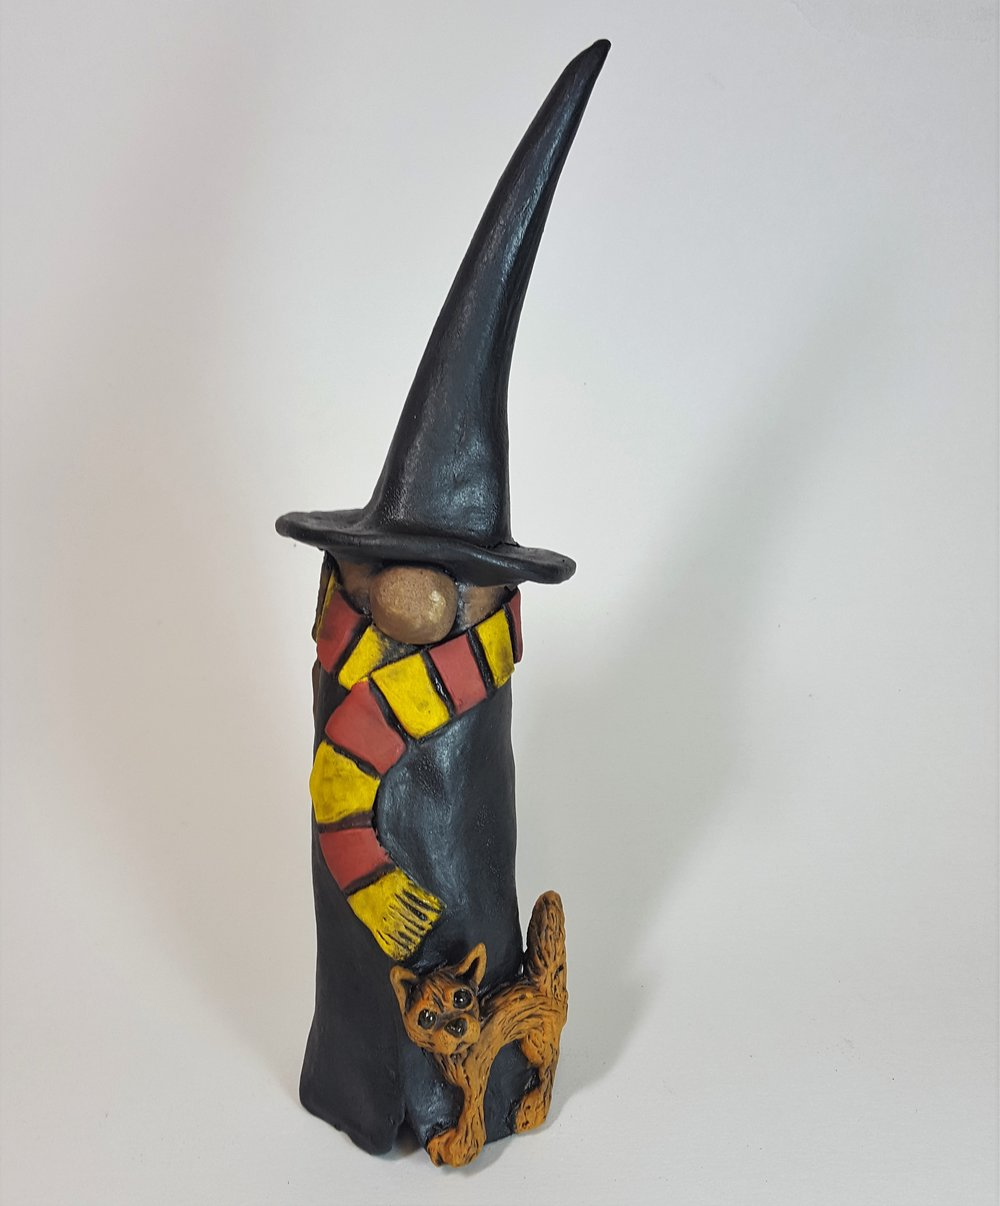 SECOND 10 Inch Tall Witch/Wizard with Long Brown Hair and Orange Cat - $50